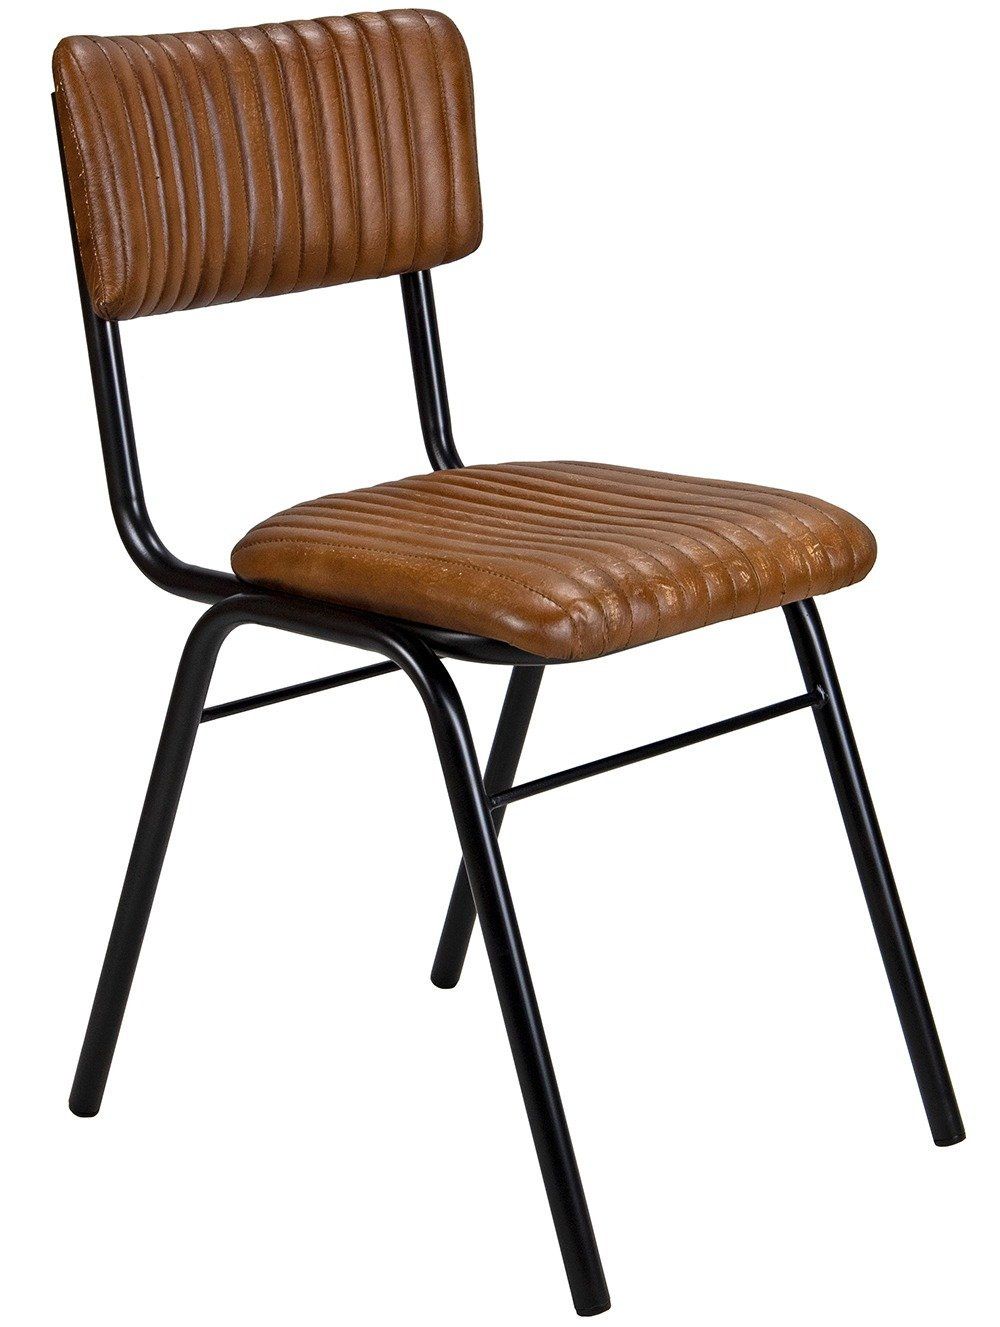 School Side Chair from a 45 degree angle